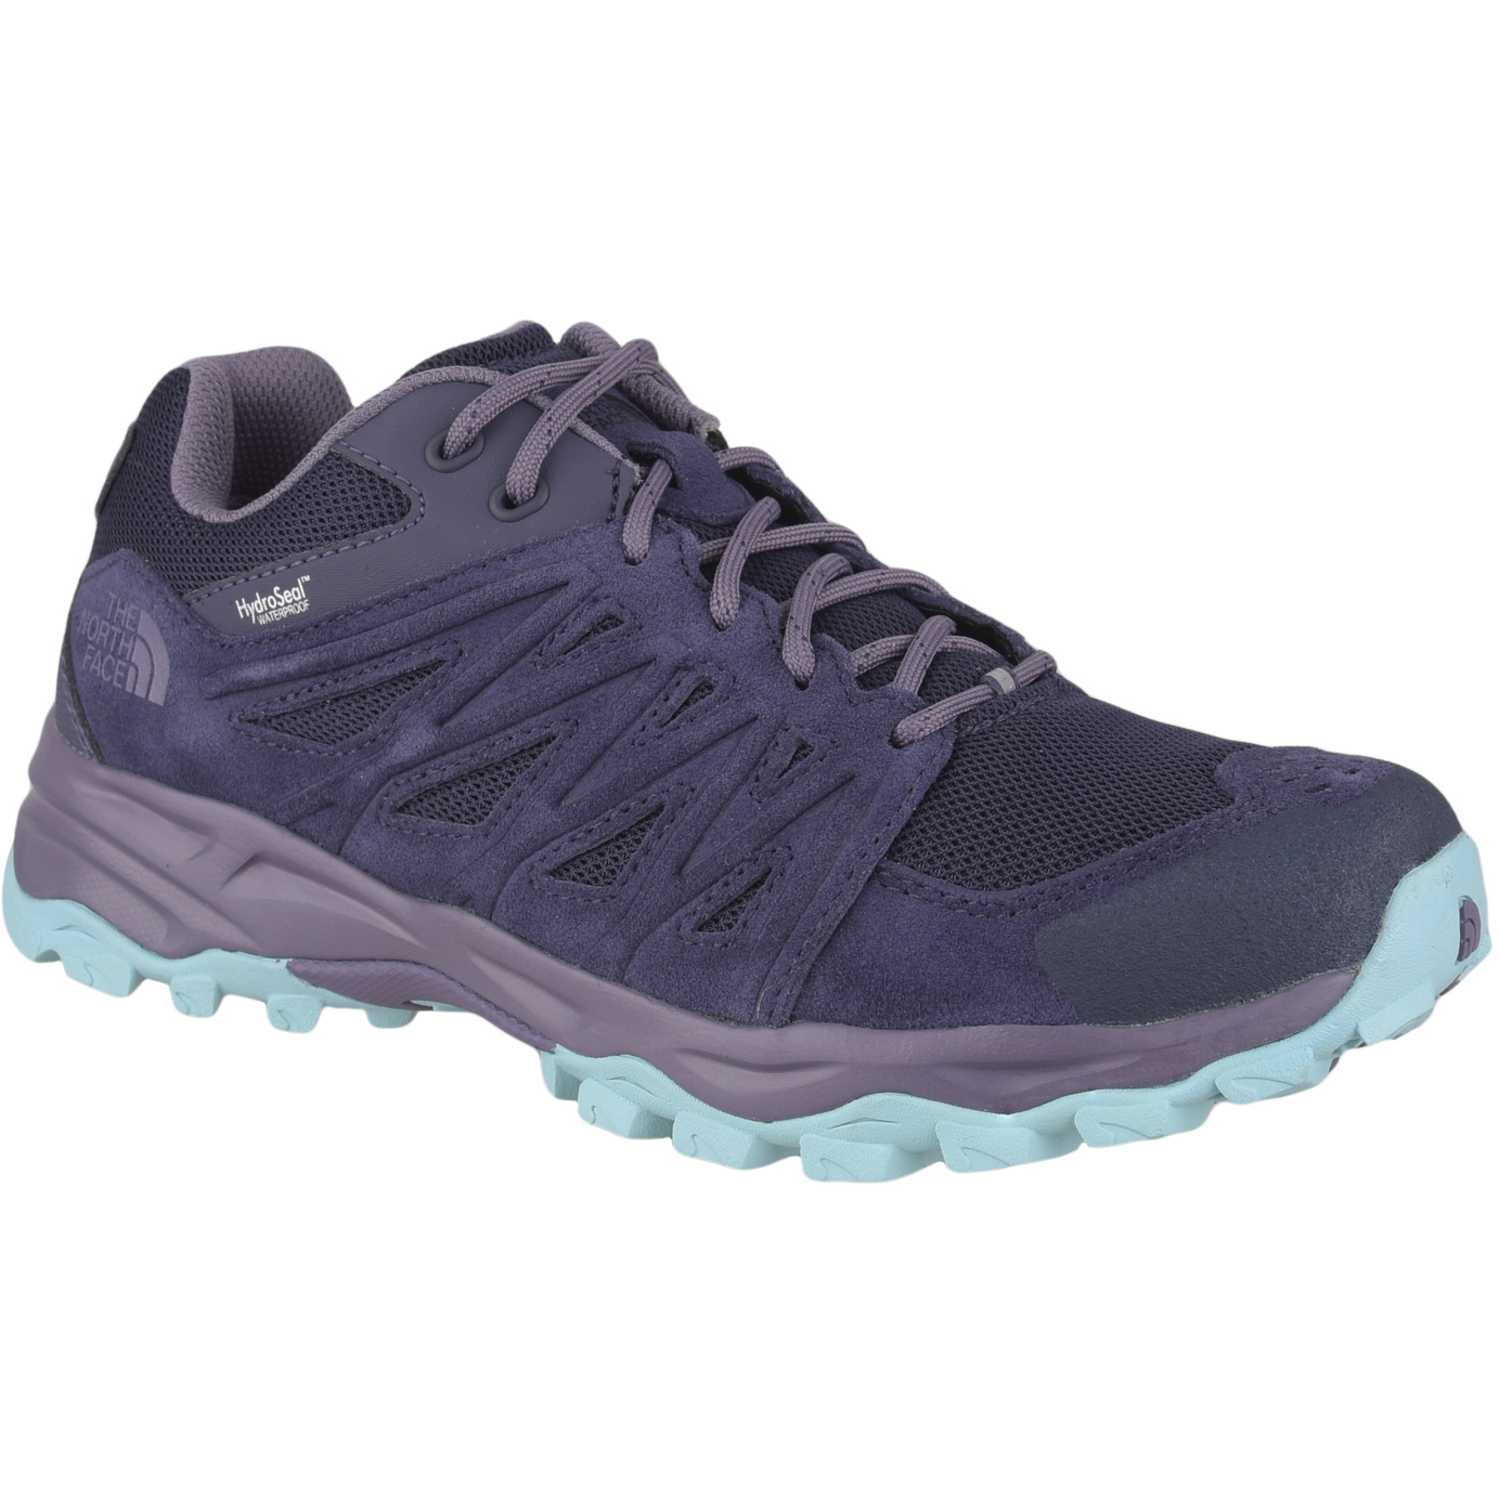 Zapatilla de Mujer The North Face Negro / plomo w truckee wp